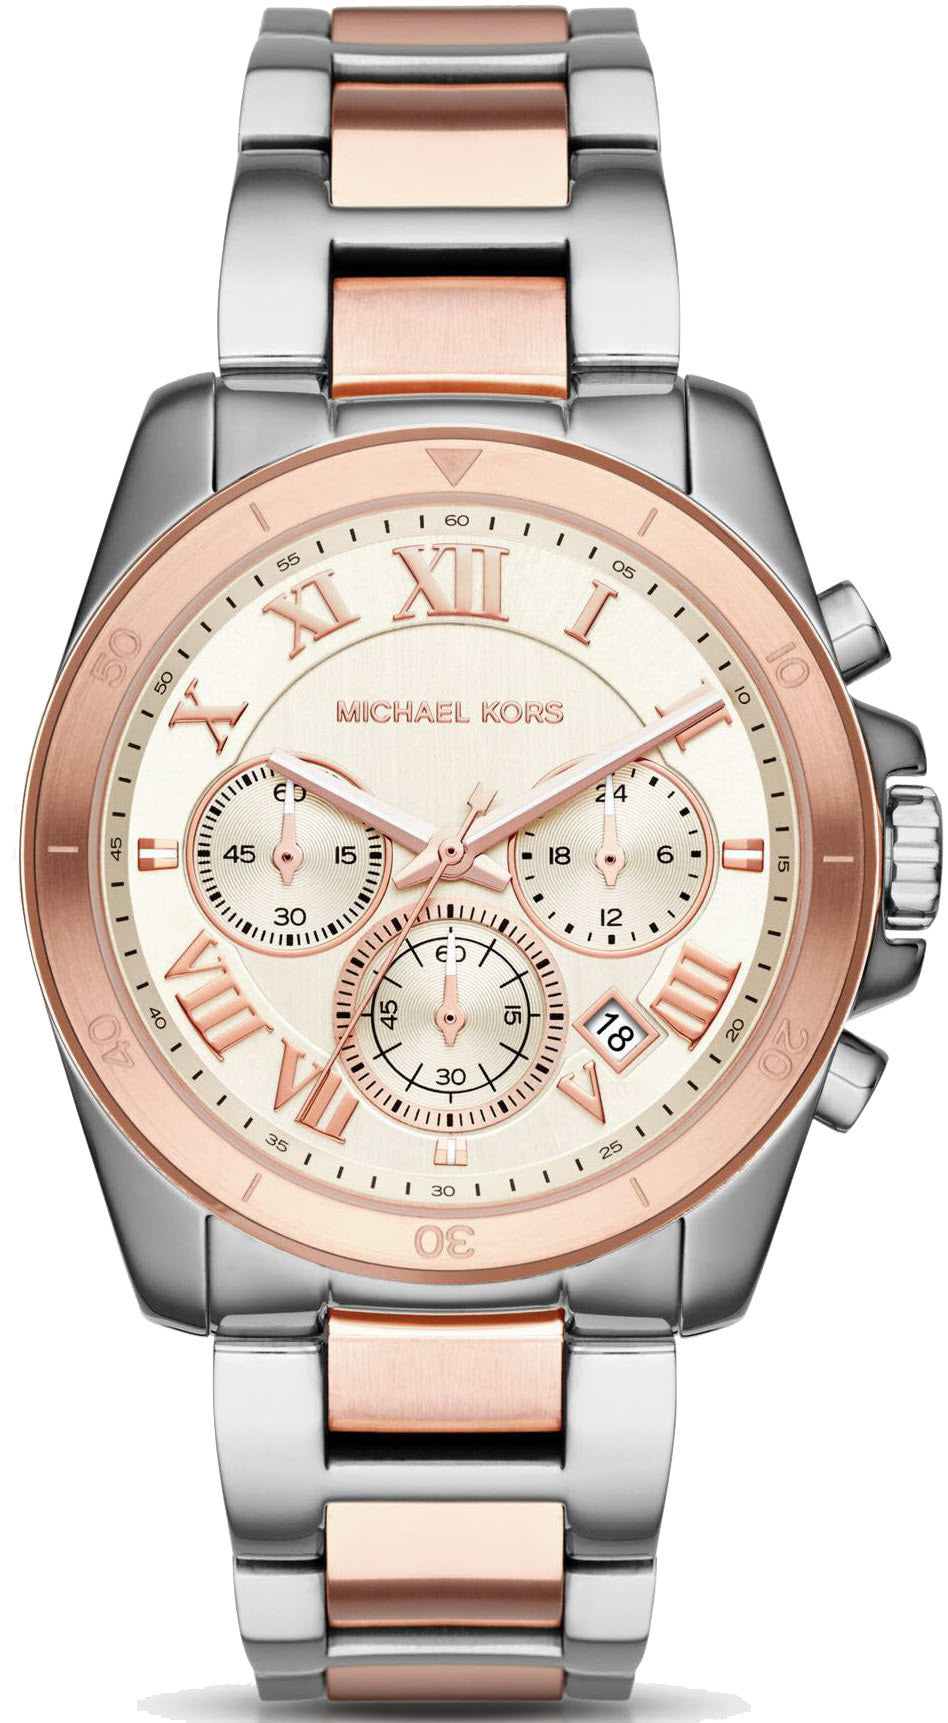 Michael Kors Watch Brecken